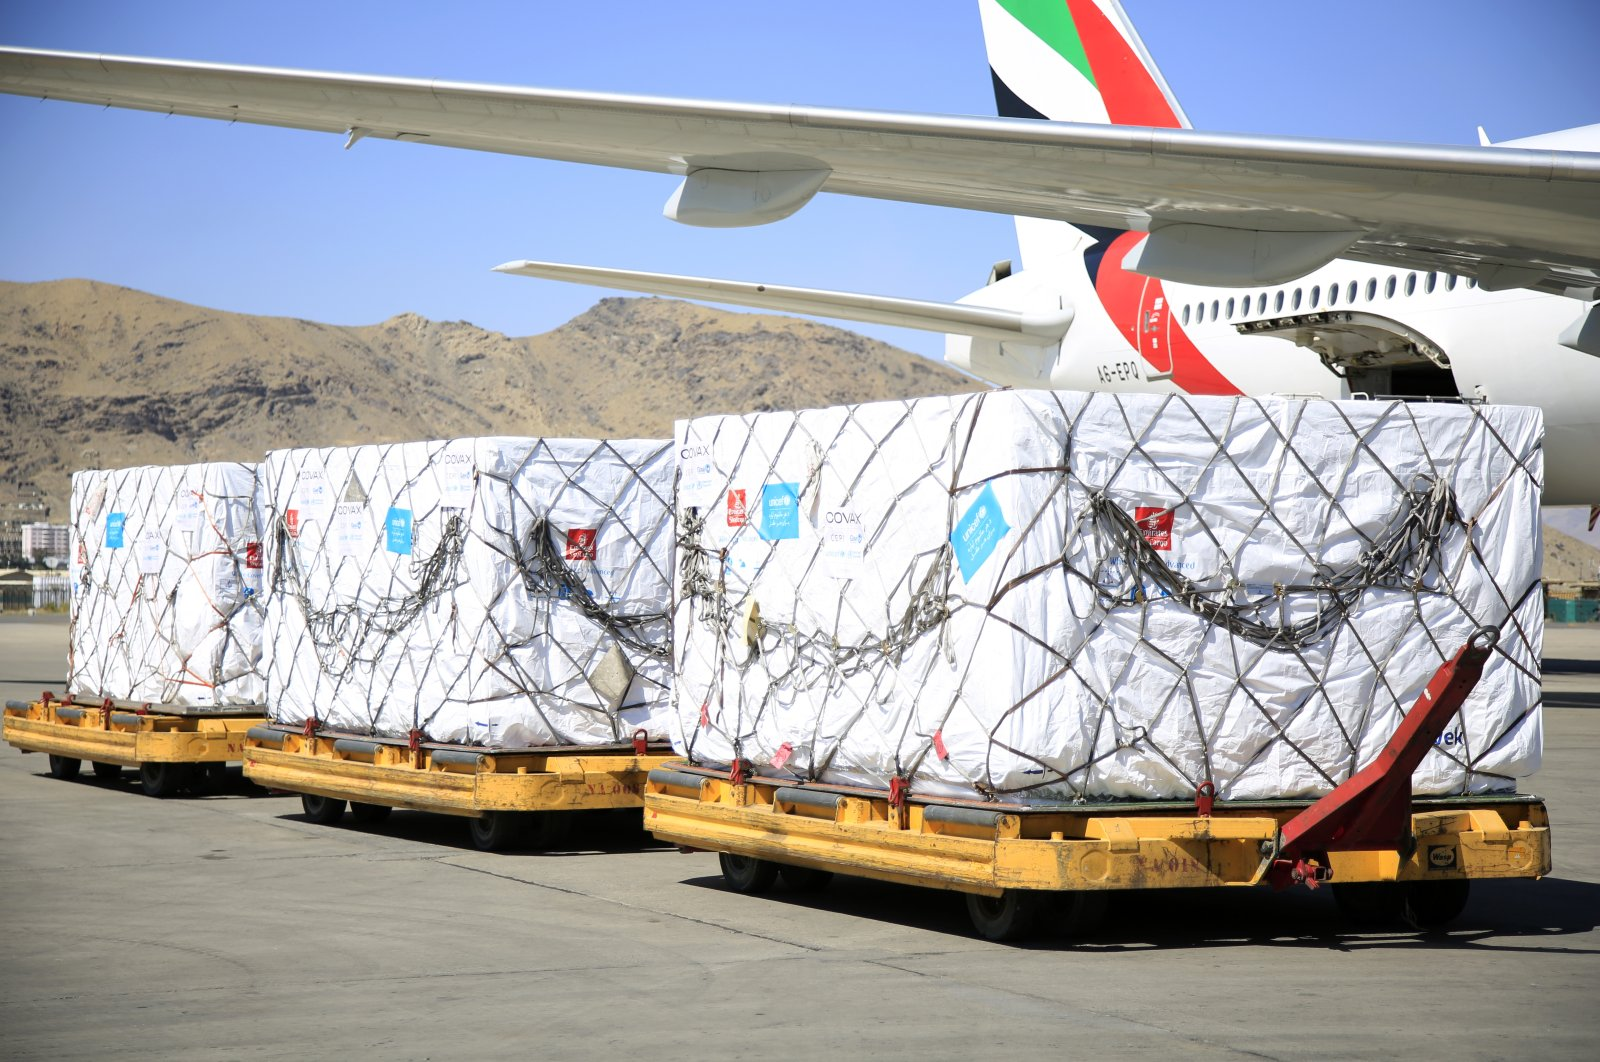 The first shipment of 1.4 million Johnson & Johnson COVID-19 vaccine doses arrives at the Hamid Karzai International Airport, in Kabul, Afghanistan, July 9, 2021. (AP Photo)